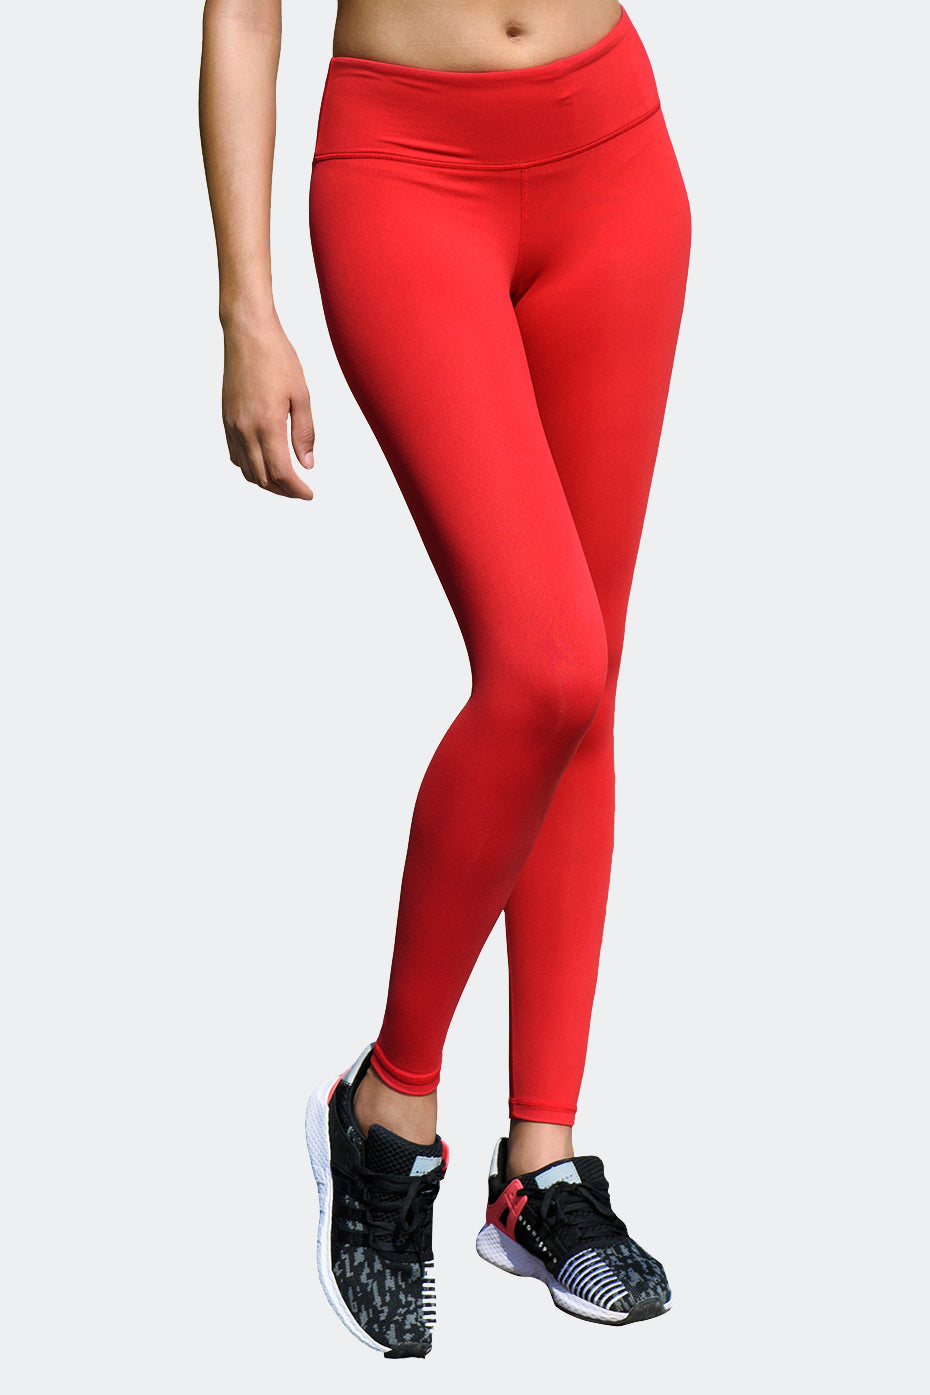 Ongasoft Yoga pants-9002Red-Front